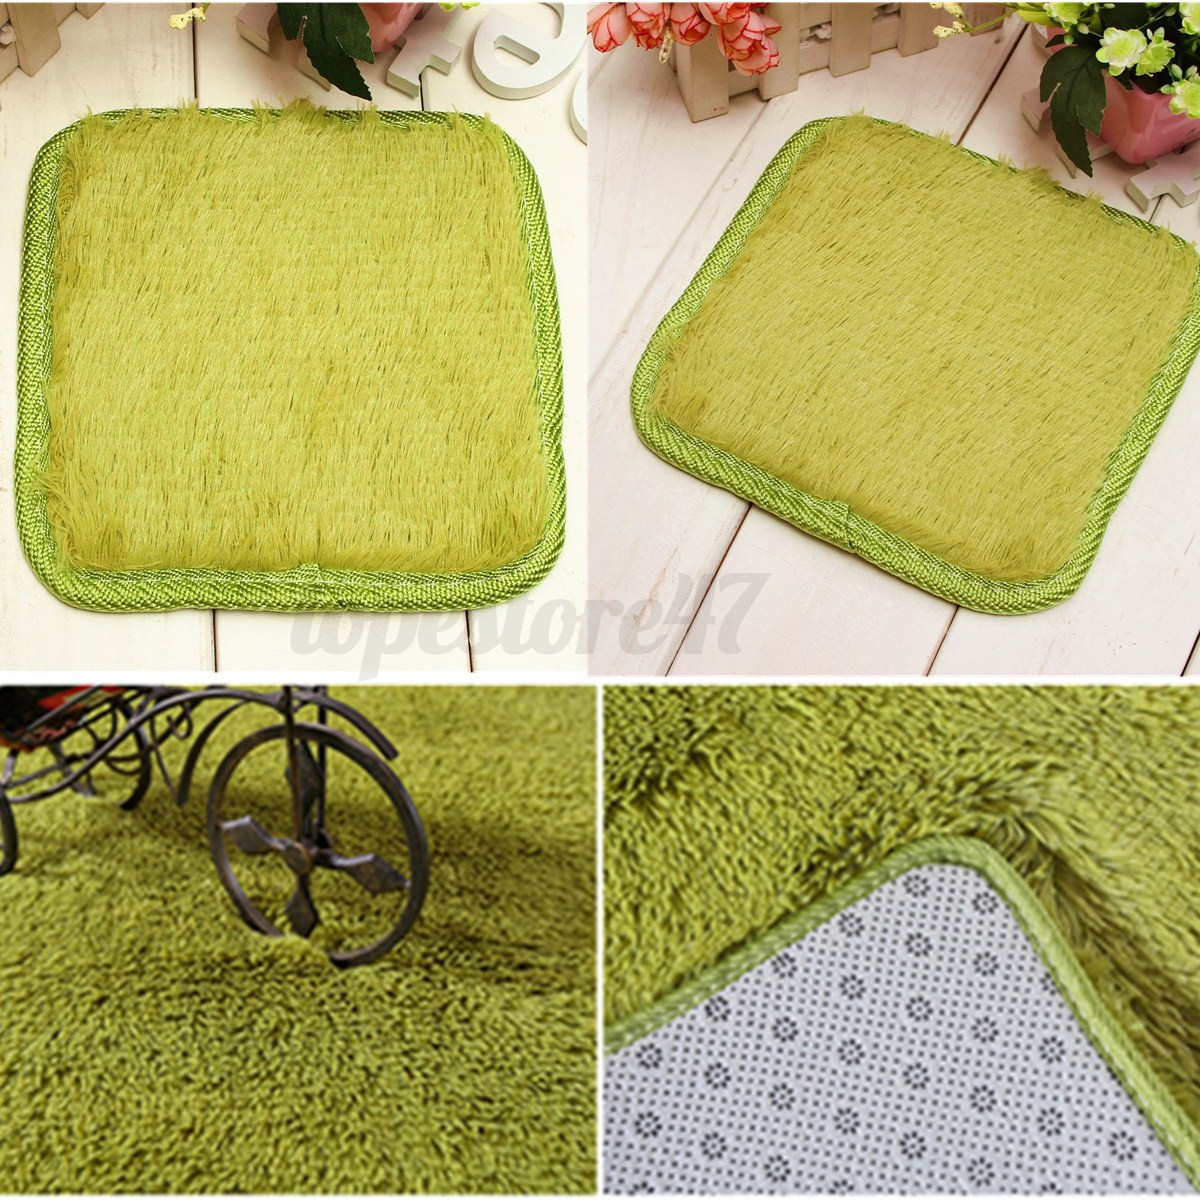 carre tapis coussin shaggy peluche antid rapant carpette moquettes salle de bain ebay. Black Bedroom Furniture Sets. Home Design Ideas